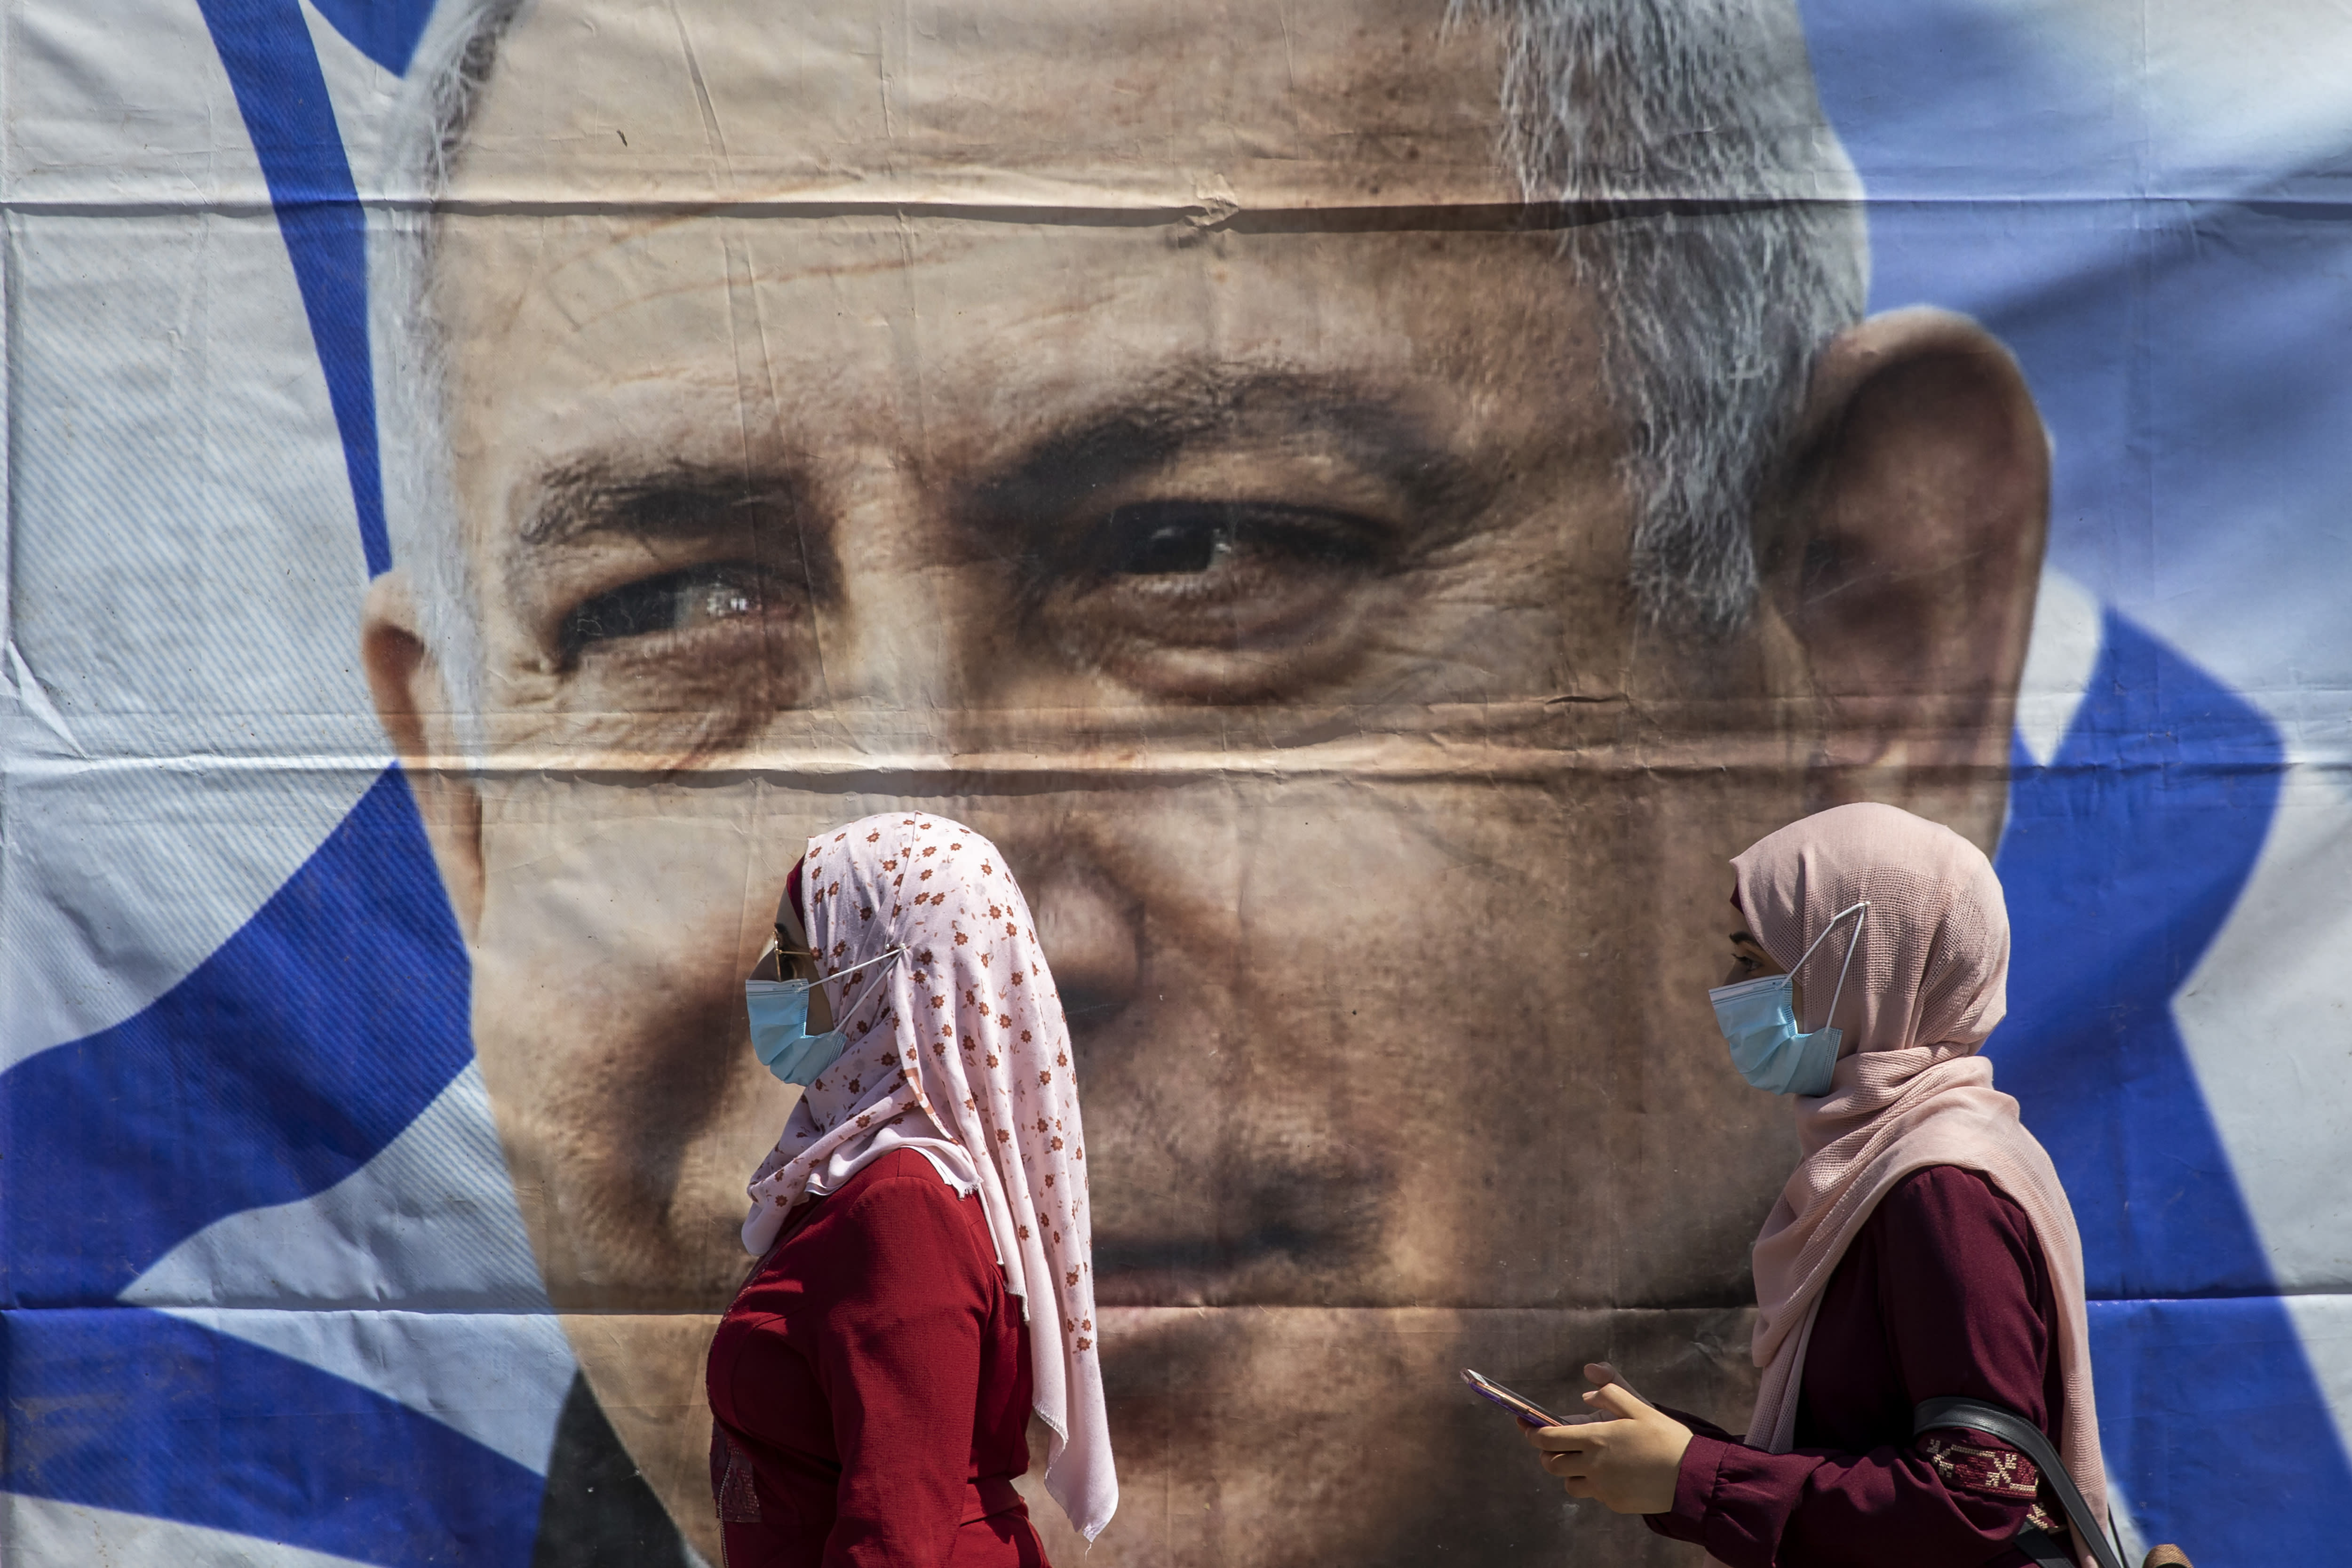 Muslim women wear face masks to help protect themselves from the coronavirus, walk past a poster hung by supporters of Prime Minister Benjamin Netanyahu outside the district court in Jerusalem, Sunday, July 19, 2020. The corruption trial of Netanyahu has resumed following a two-month hiatus. (AP Photo/Ariel Schalit)